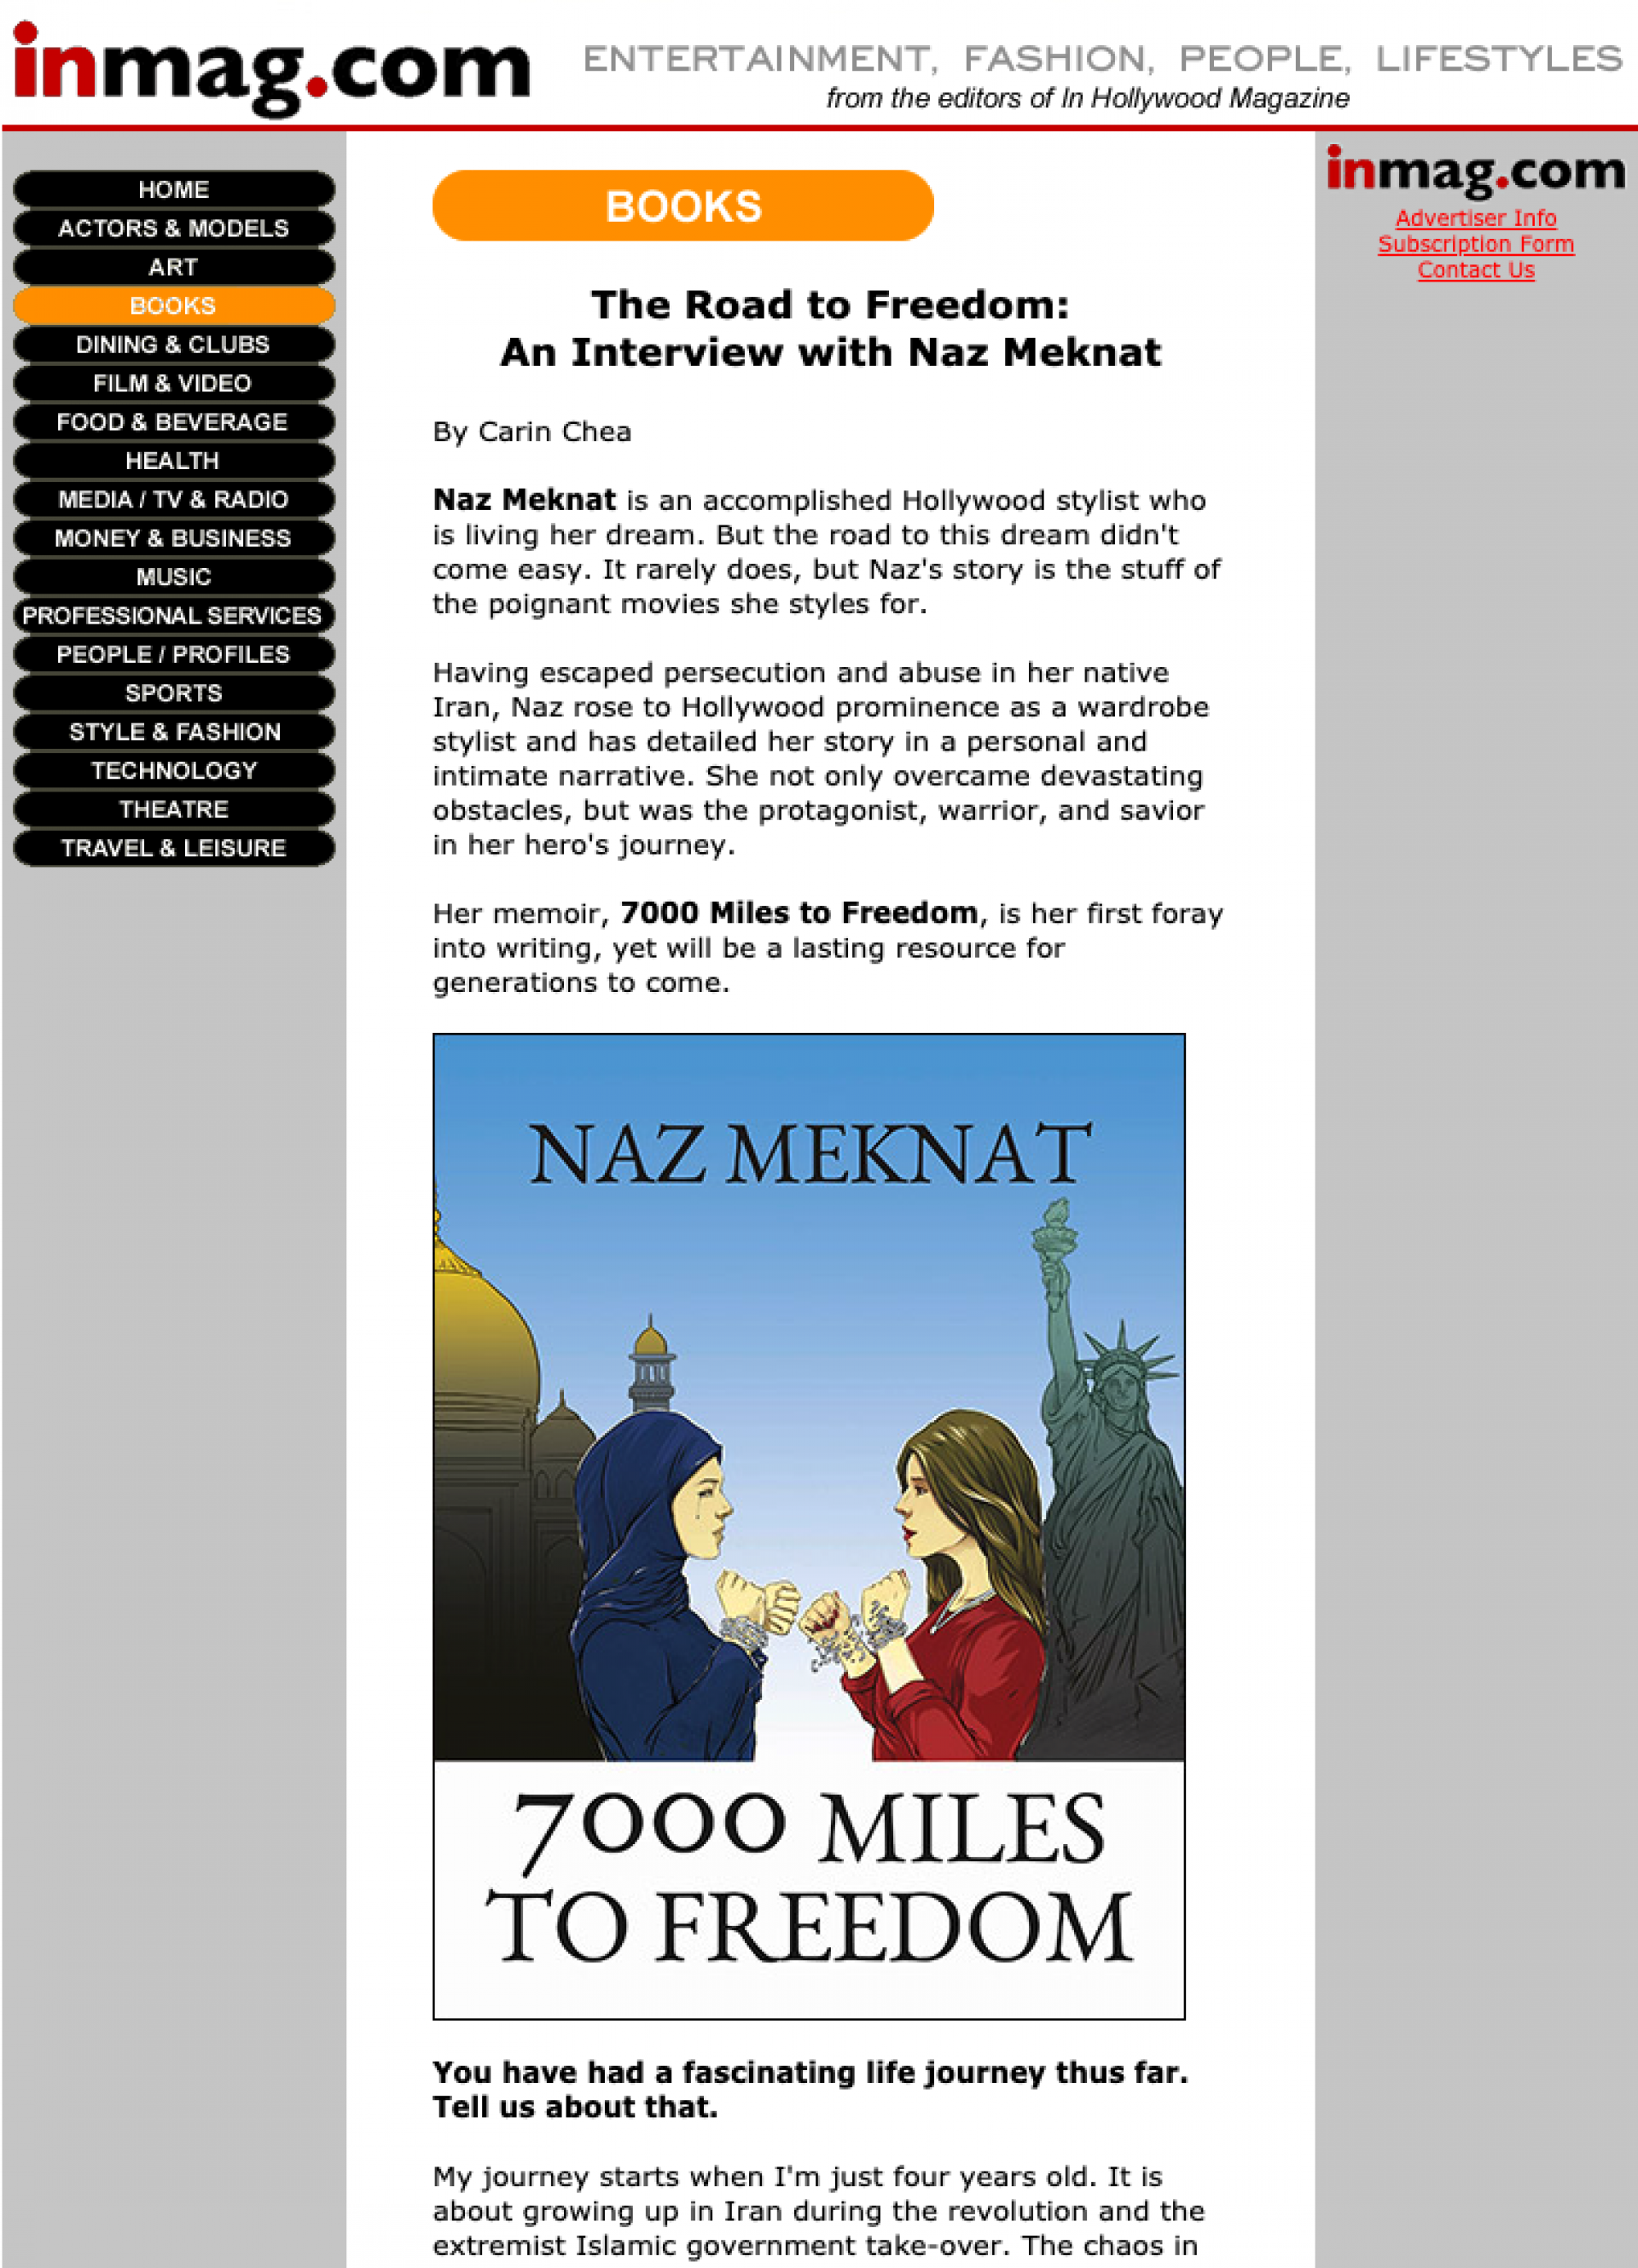 InMag: The Road to Freedom: An Interview with Naz Meknat